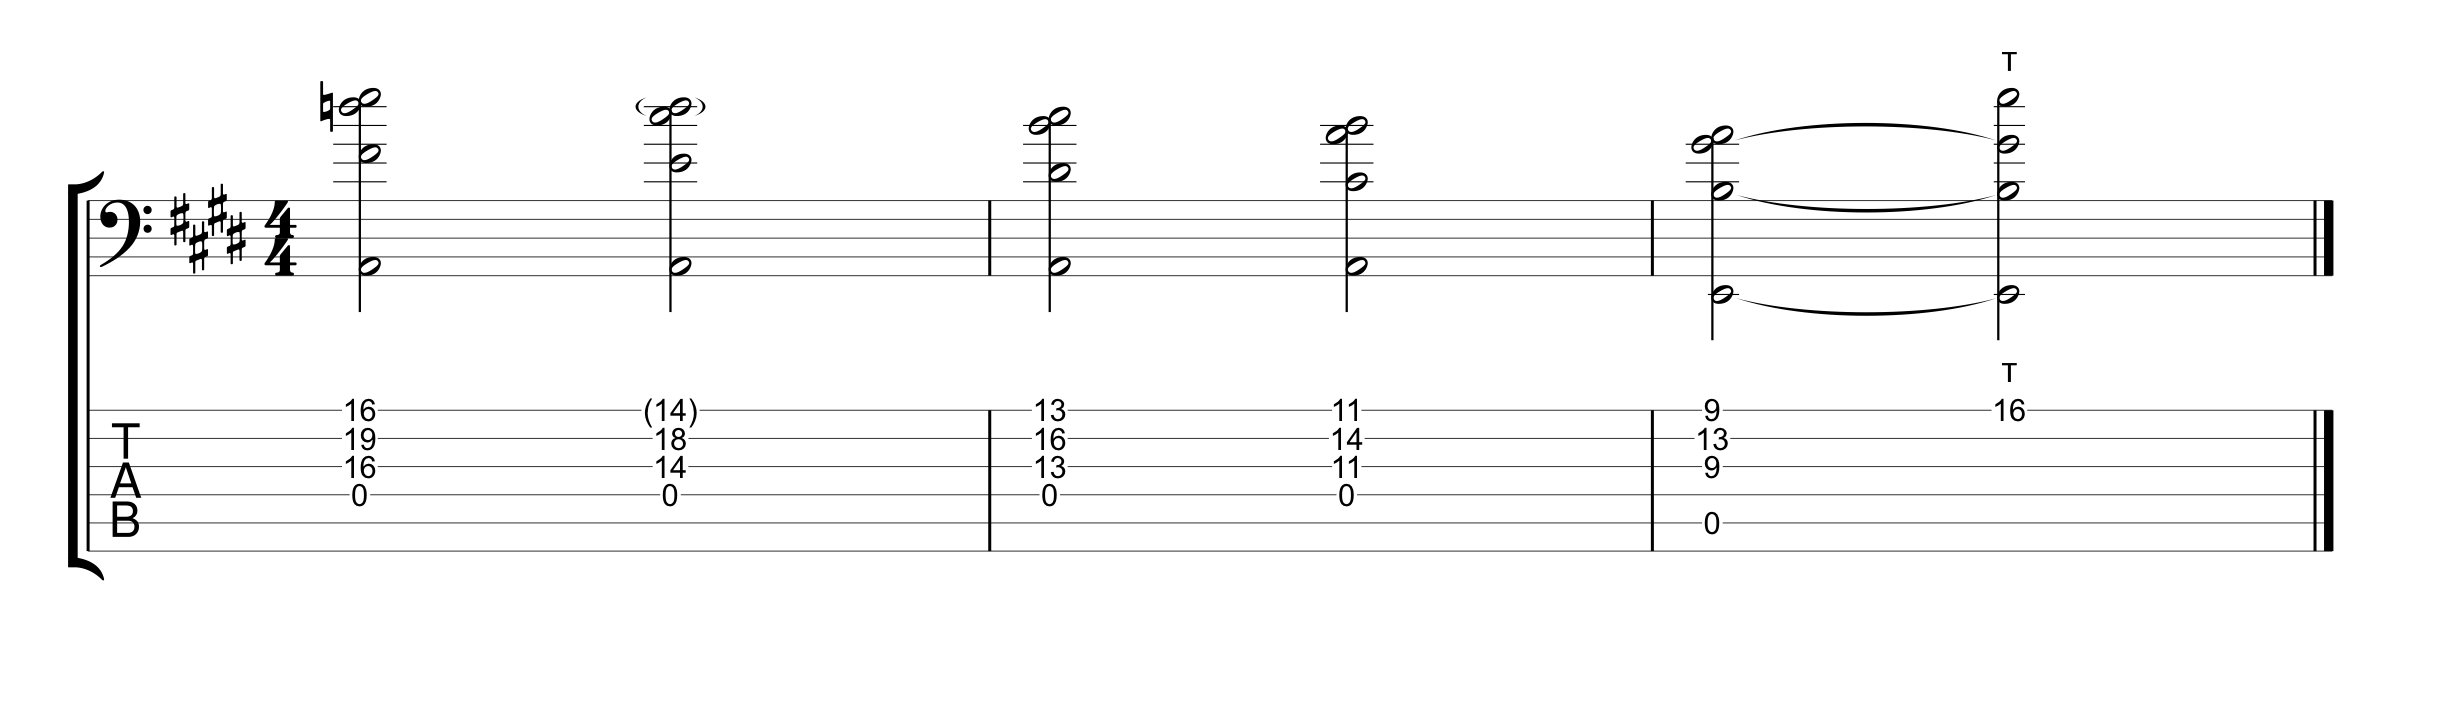 Suspended and Major Chord Voicings Opening Sequence